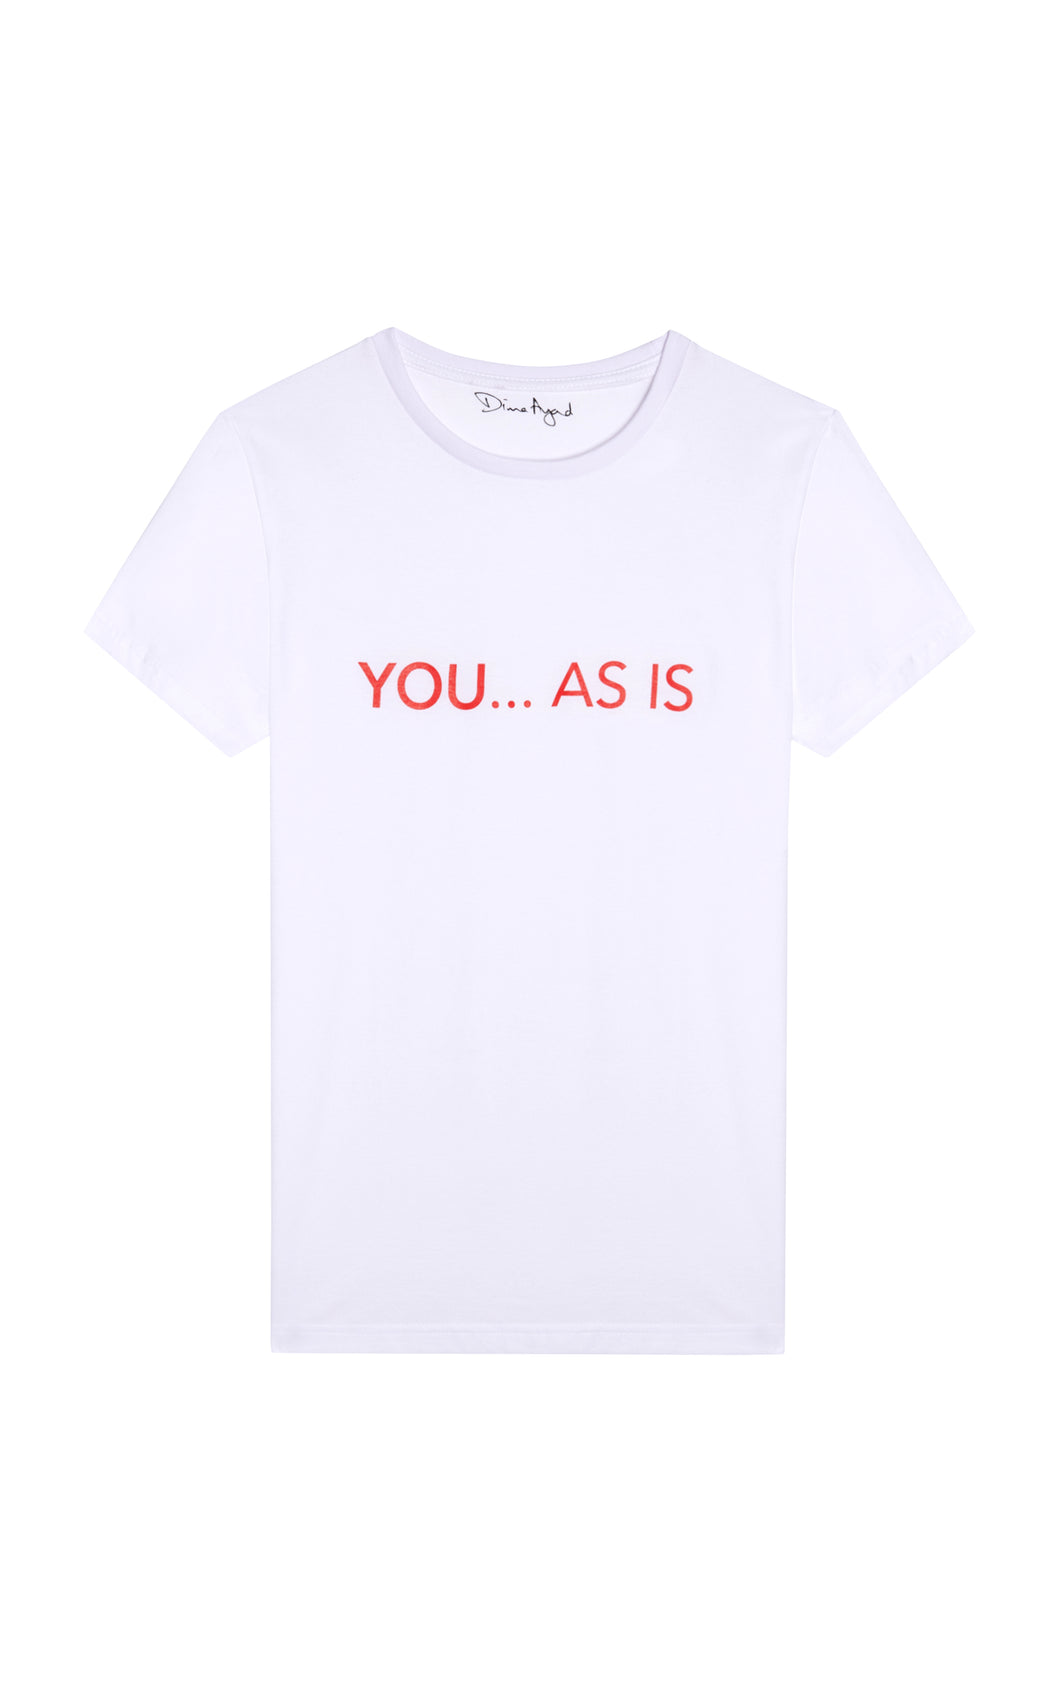 YOU...AS IS White T-shirt with Red Text, English